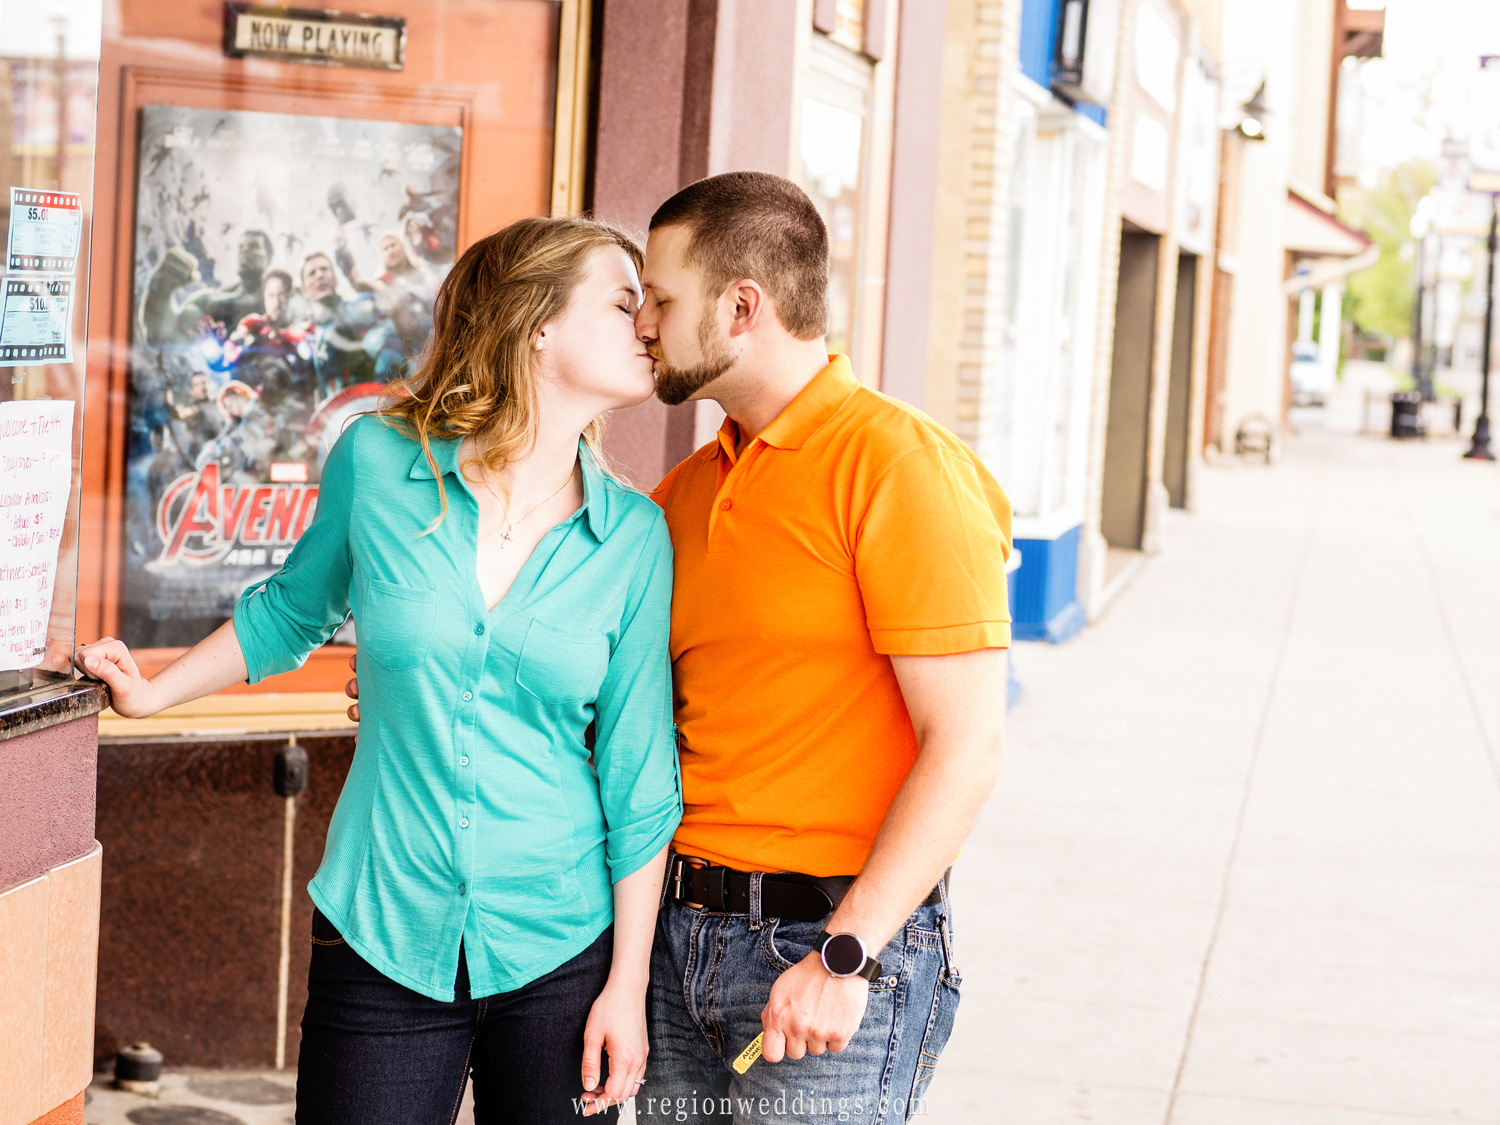 A couple kisses outside the movie theater for their engagement photo.